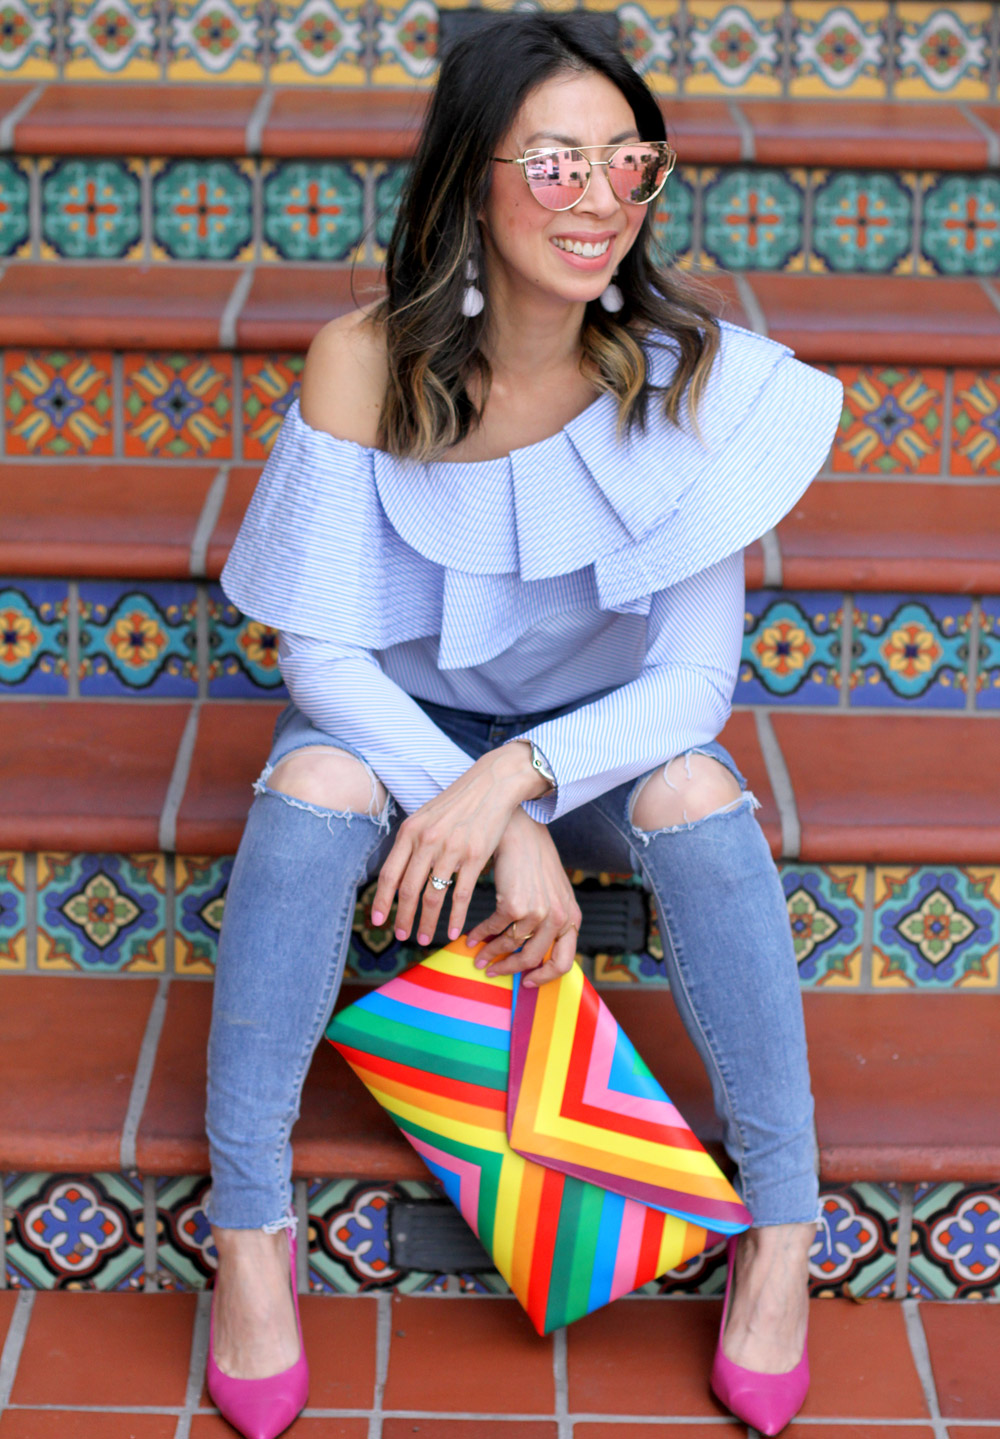 stylekeepers ruffle one shoulder top with ripped knee skinny jeans and rainbow clutch, pink pumps